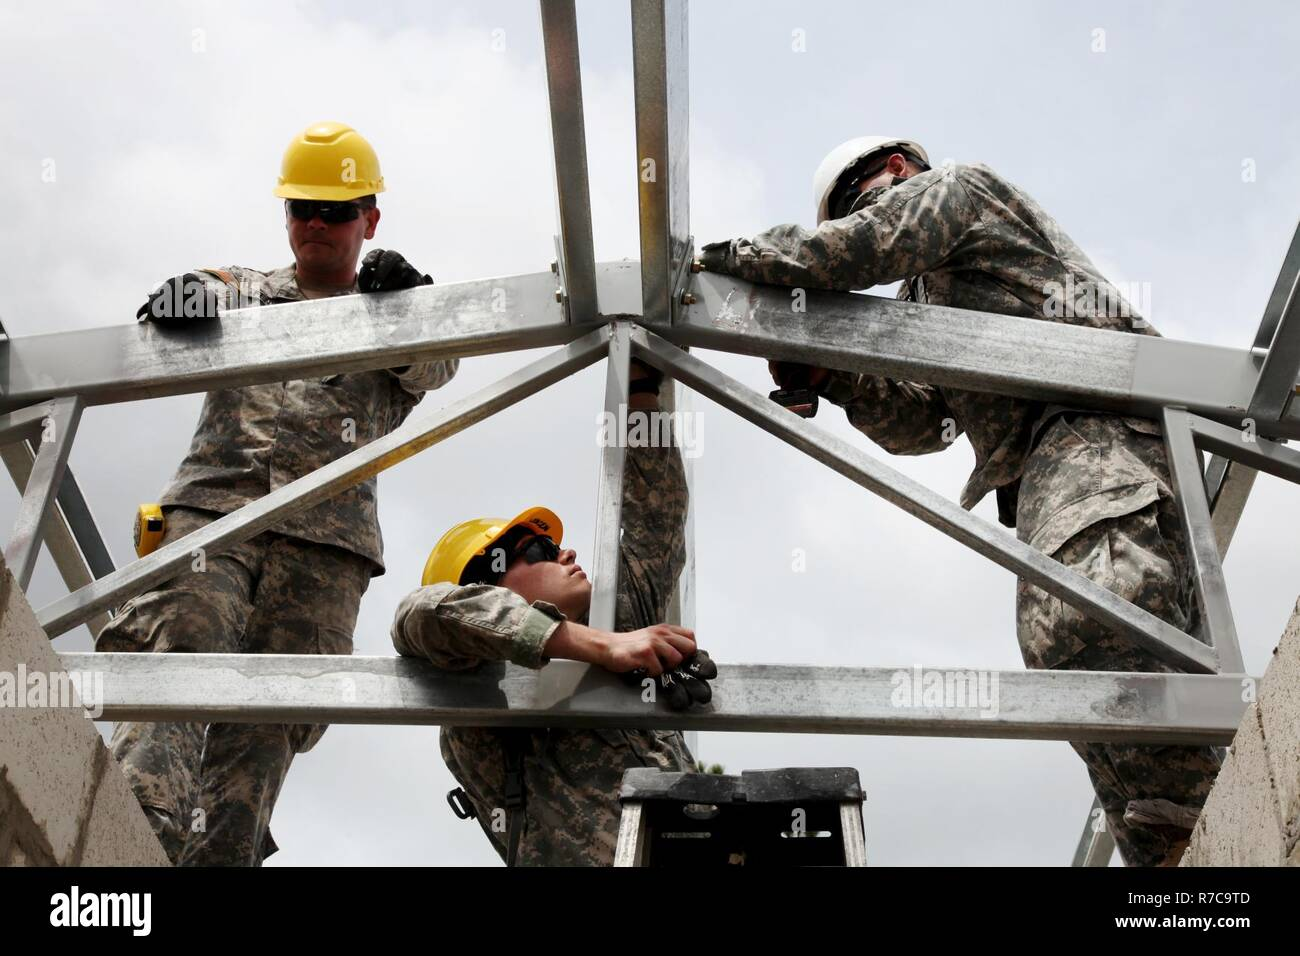 485th Engineer Company High Resolution Stock Photography And Images Alamy